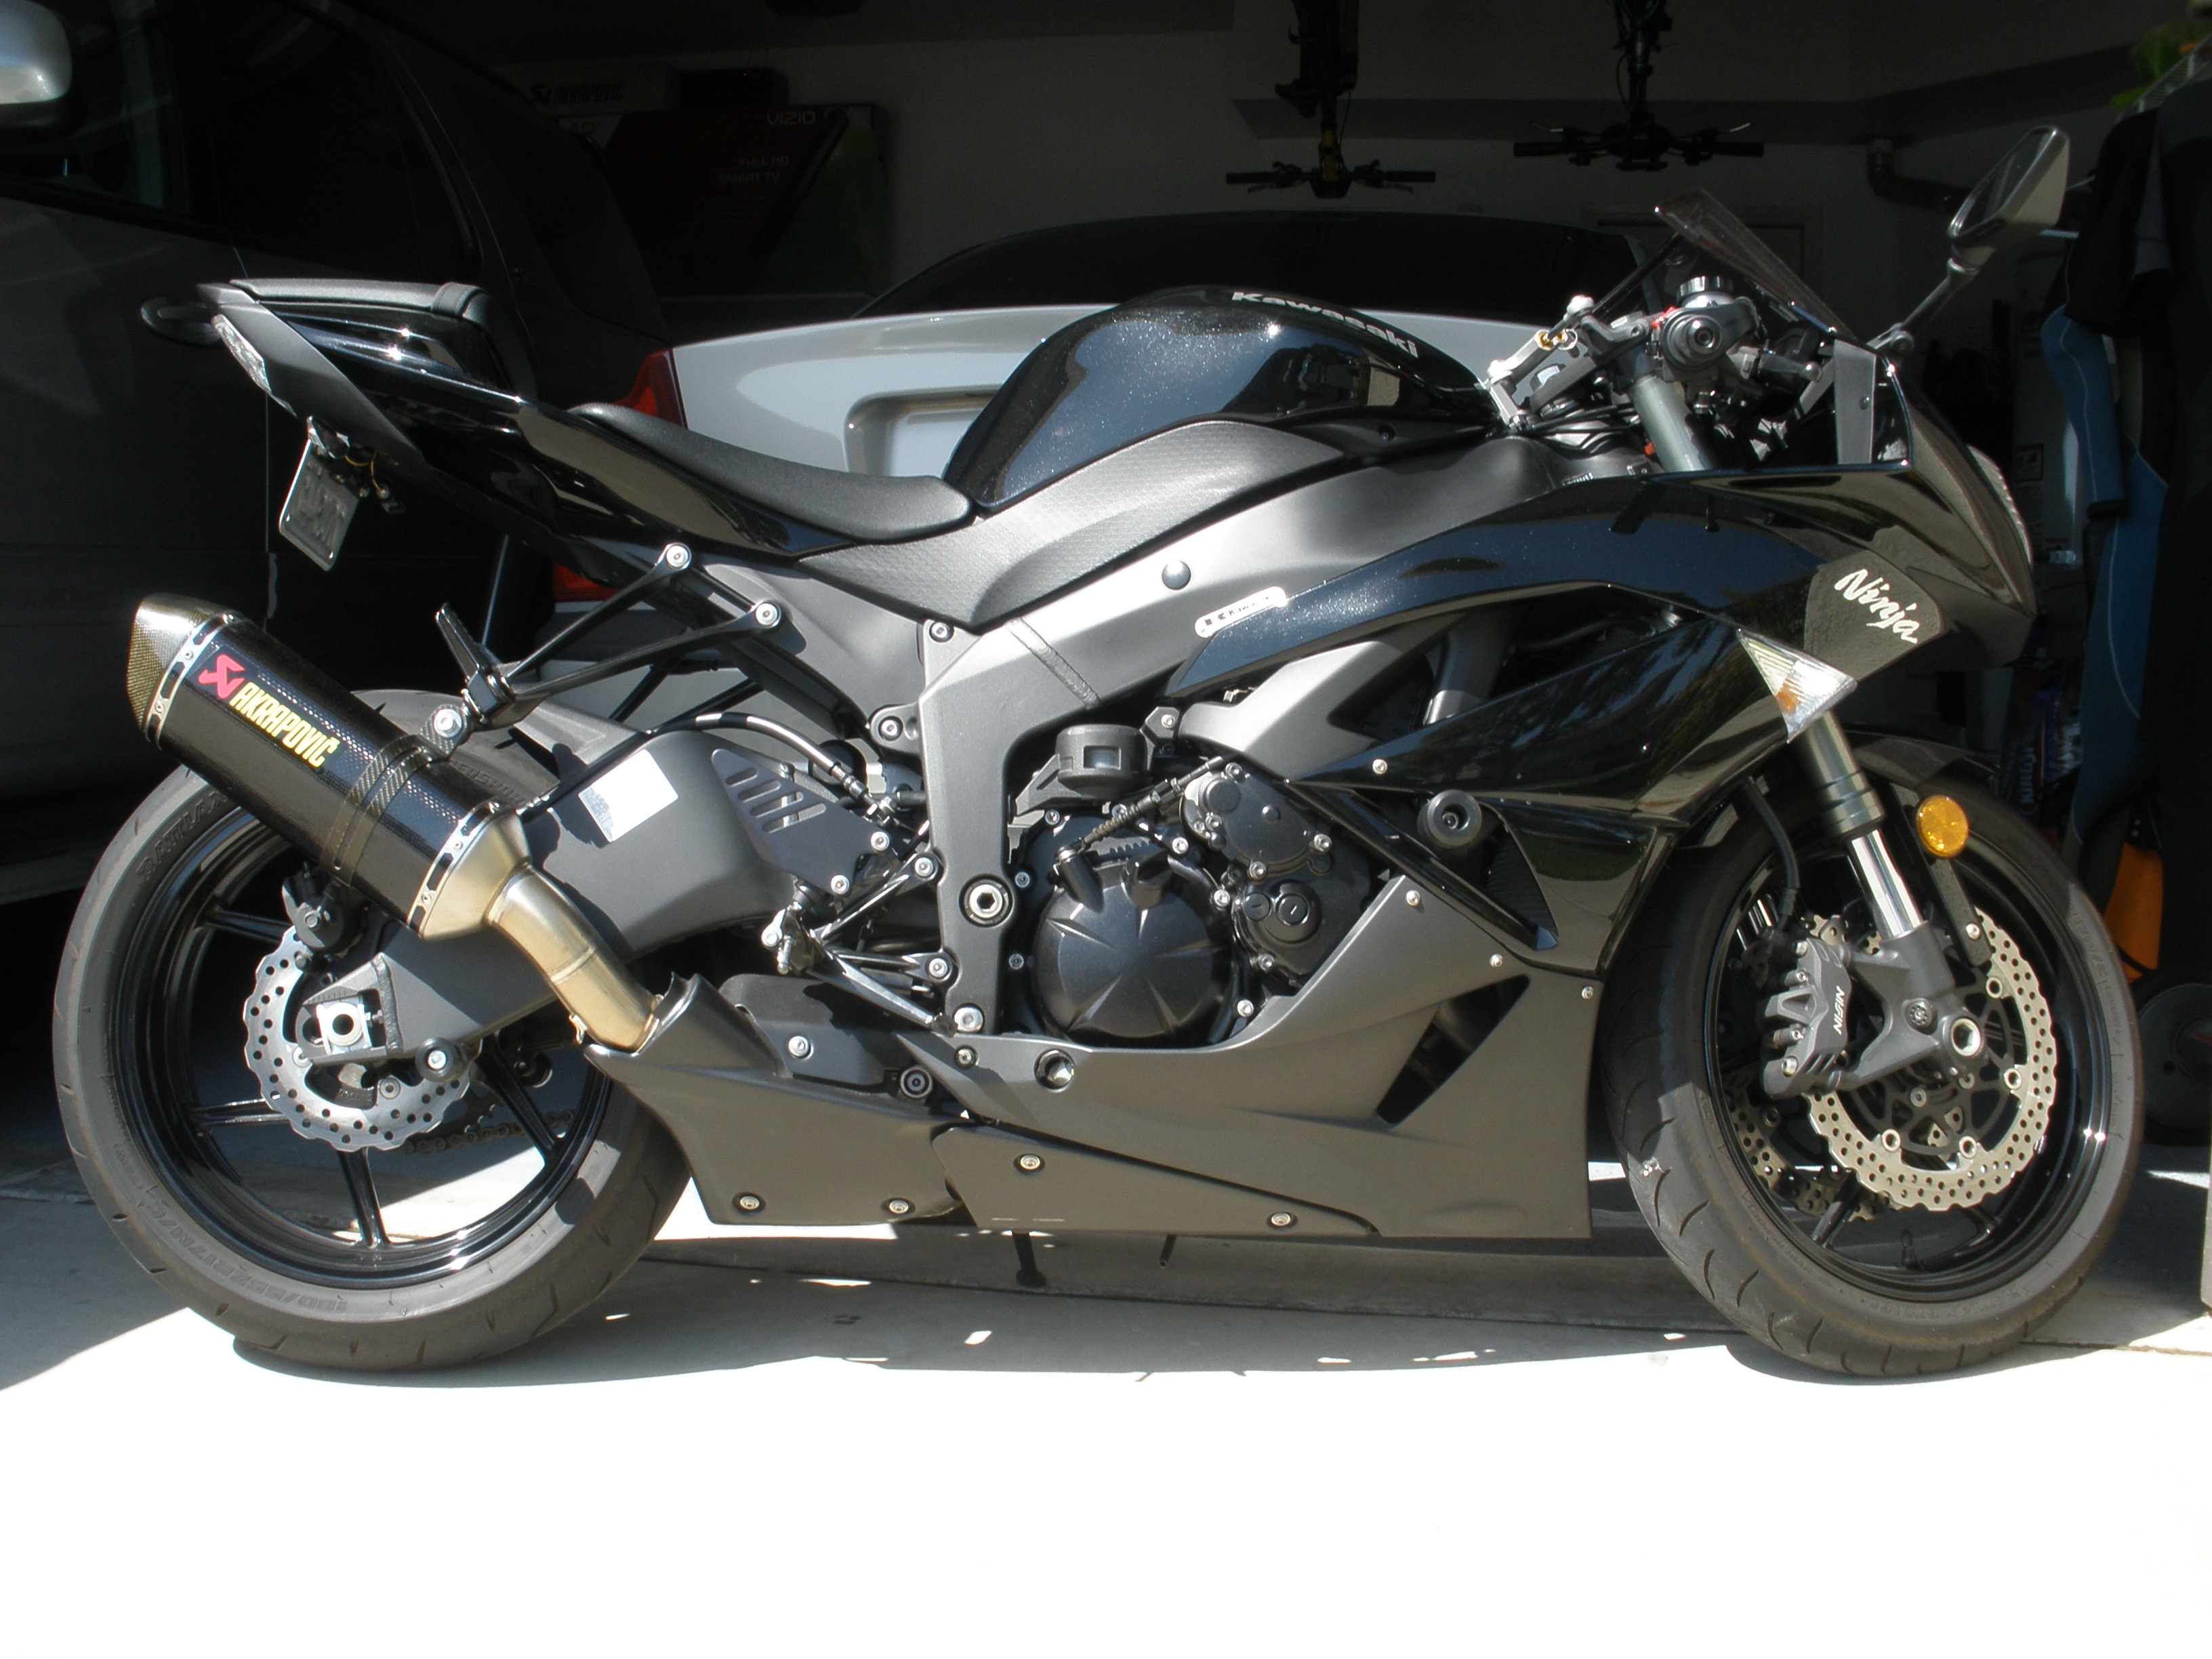 2009 Zx6r Akrapovic Exhaust Page 3 Zx6r Forum